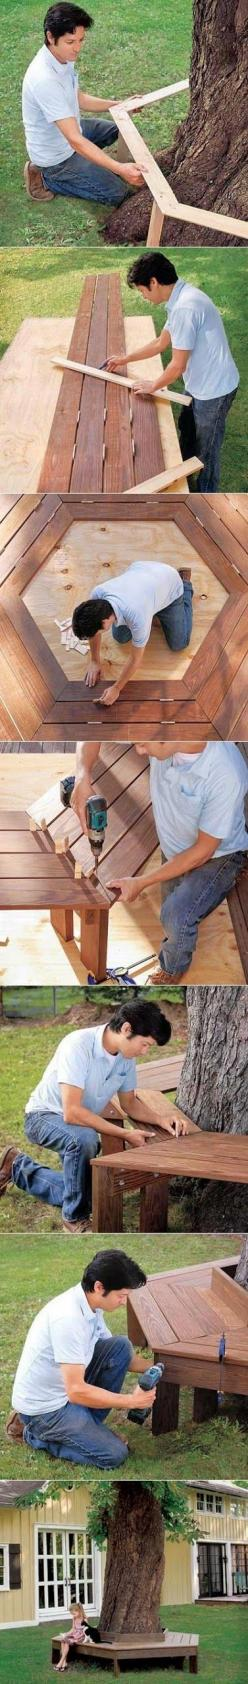 How to build a bench around a tree Follow us on Facebook here: http://www.facebook.com/diyncrafts: Garden Outdoor, Front Yard, Diy Outdoor, Build A Bench, Gardening Outdoor, Backyard, Tree Bench, How To Build